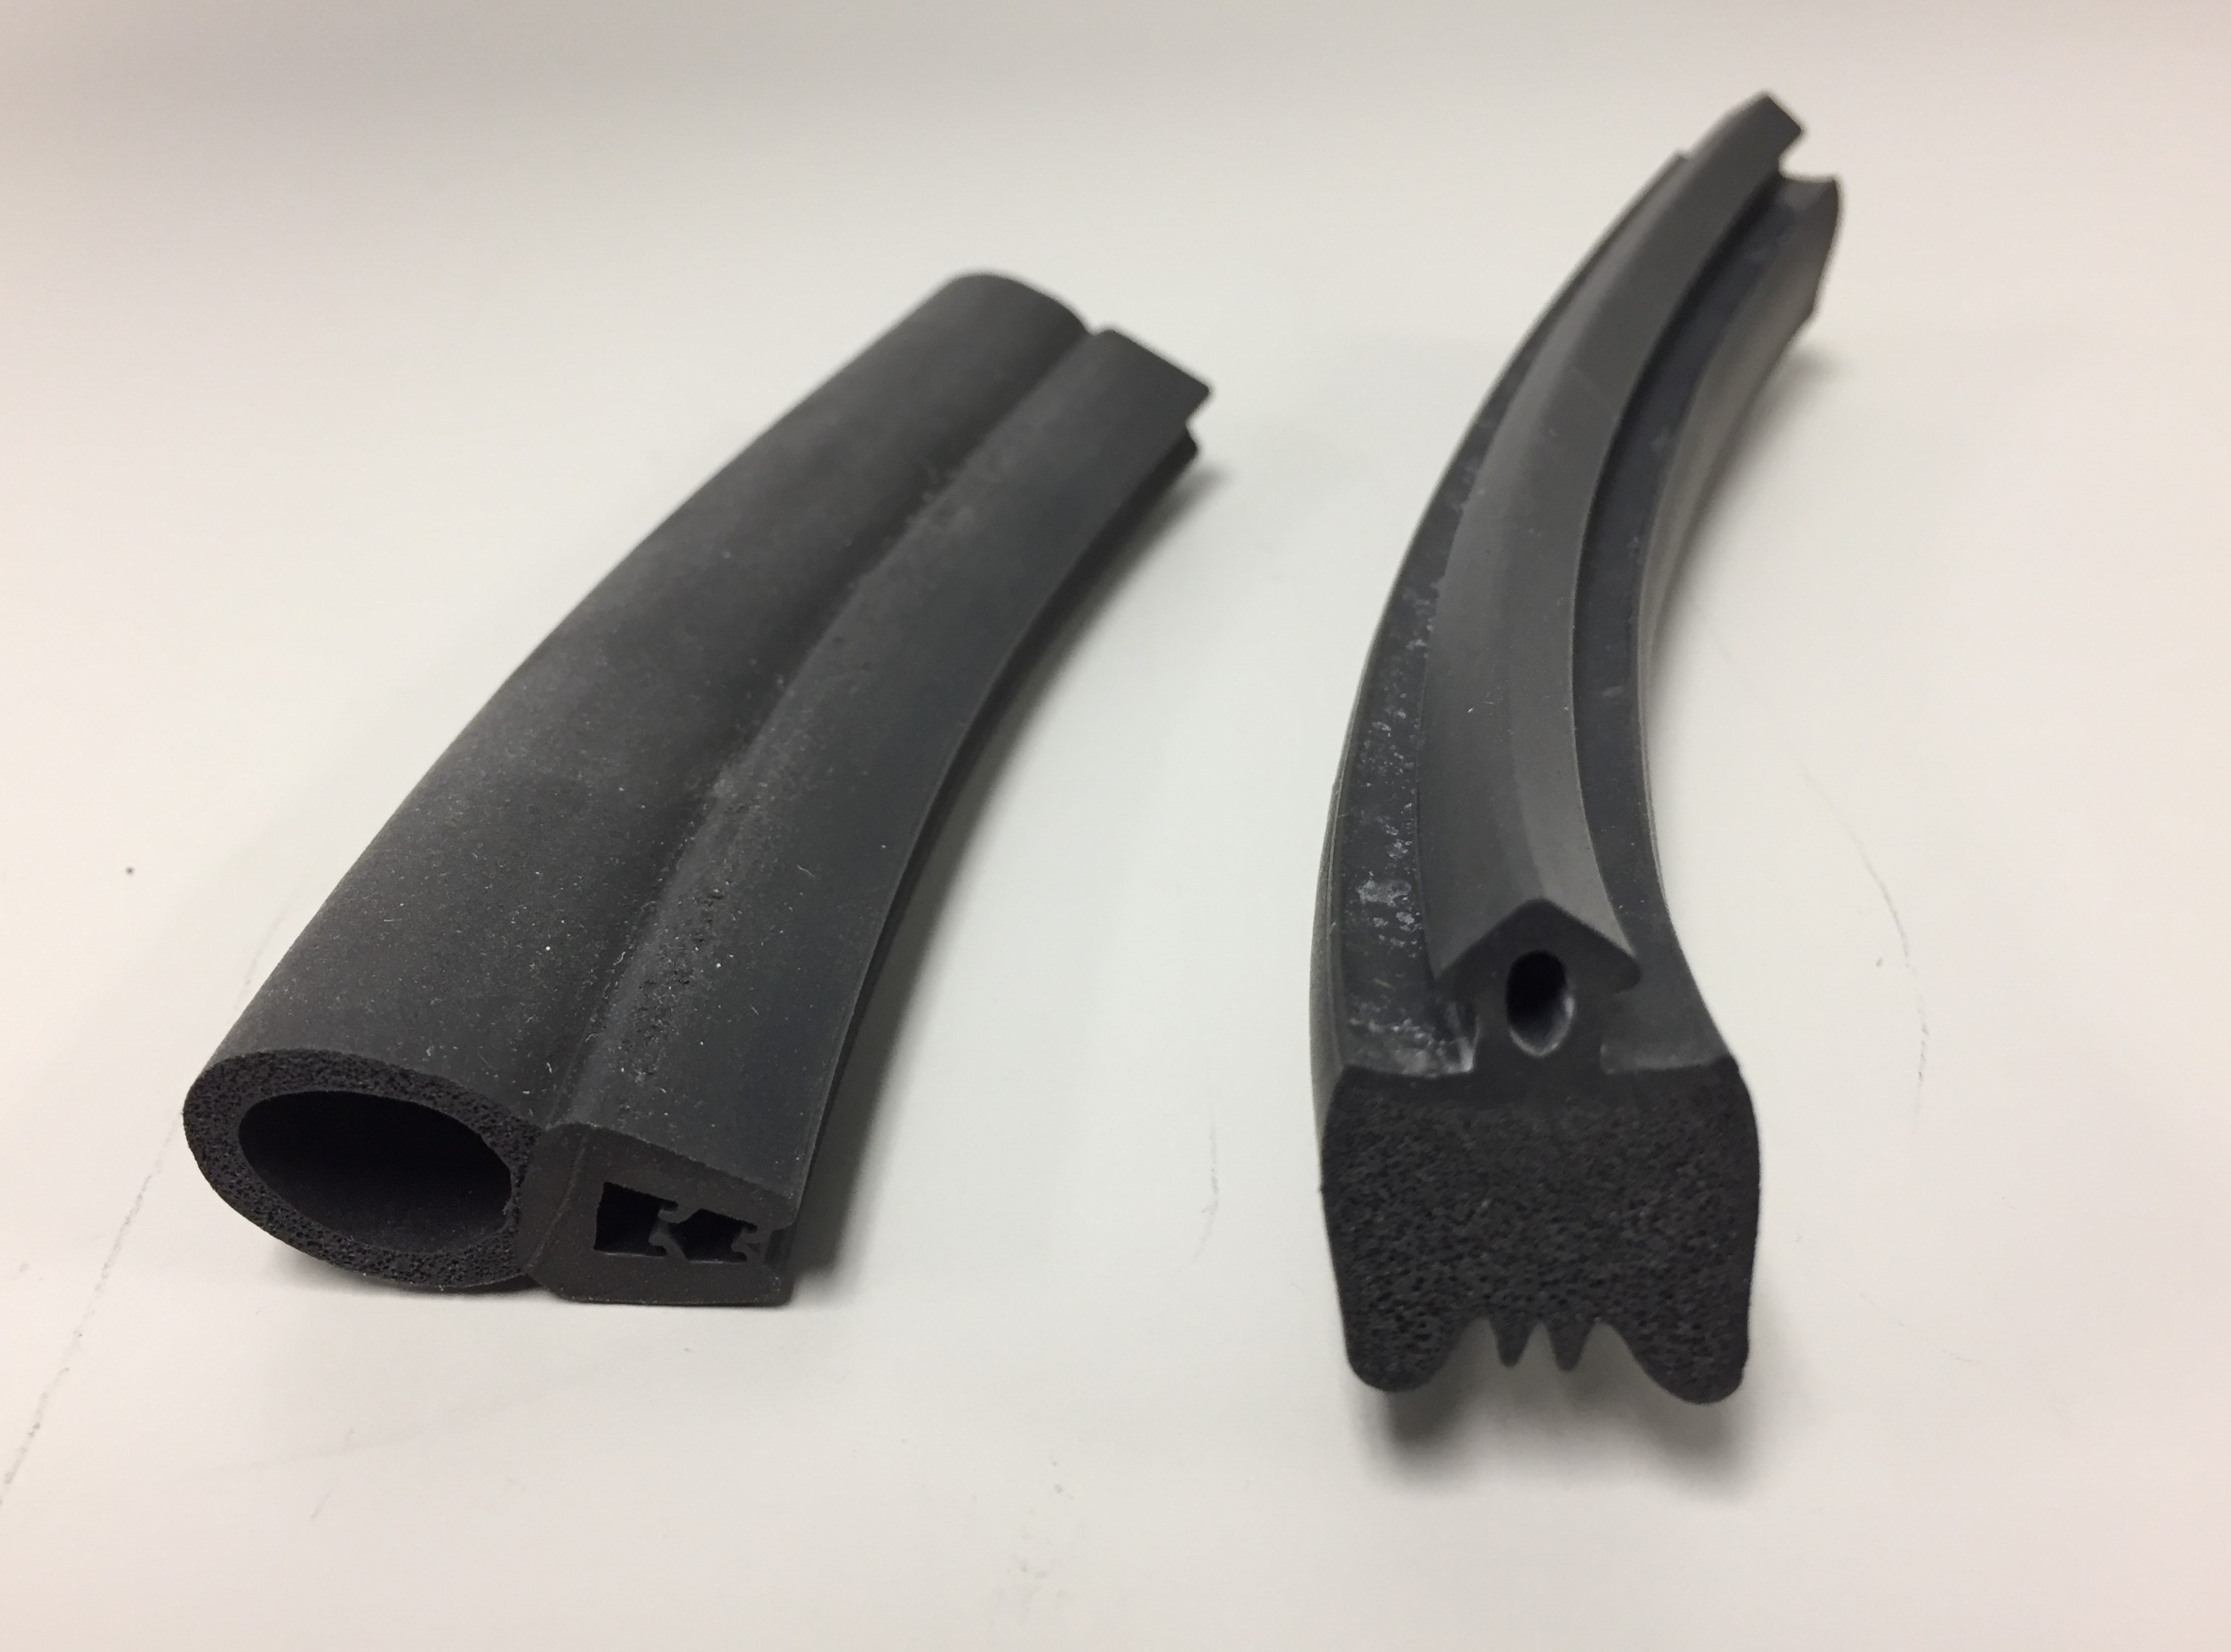 A pair of co-extruded rubber and sponge rubber components for sealing applications.